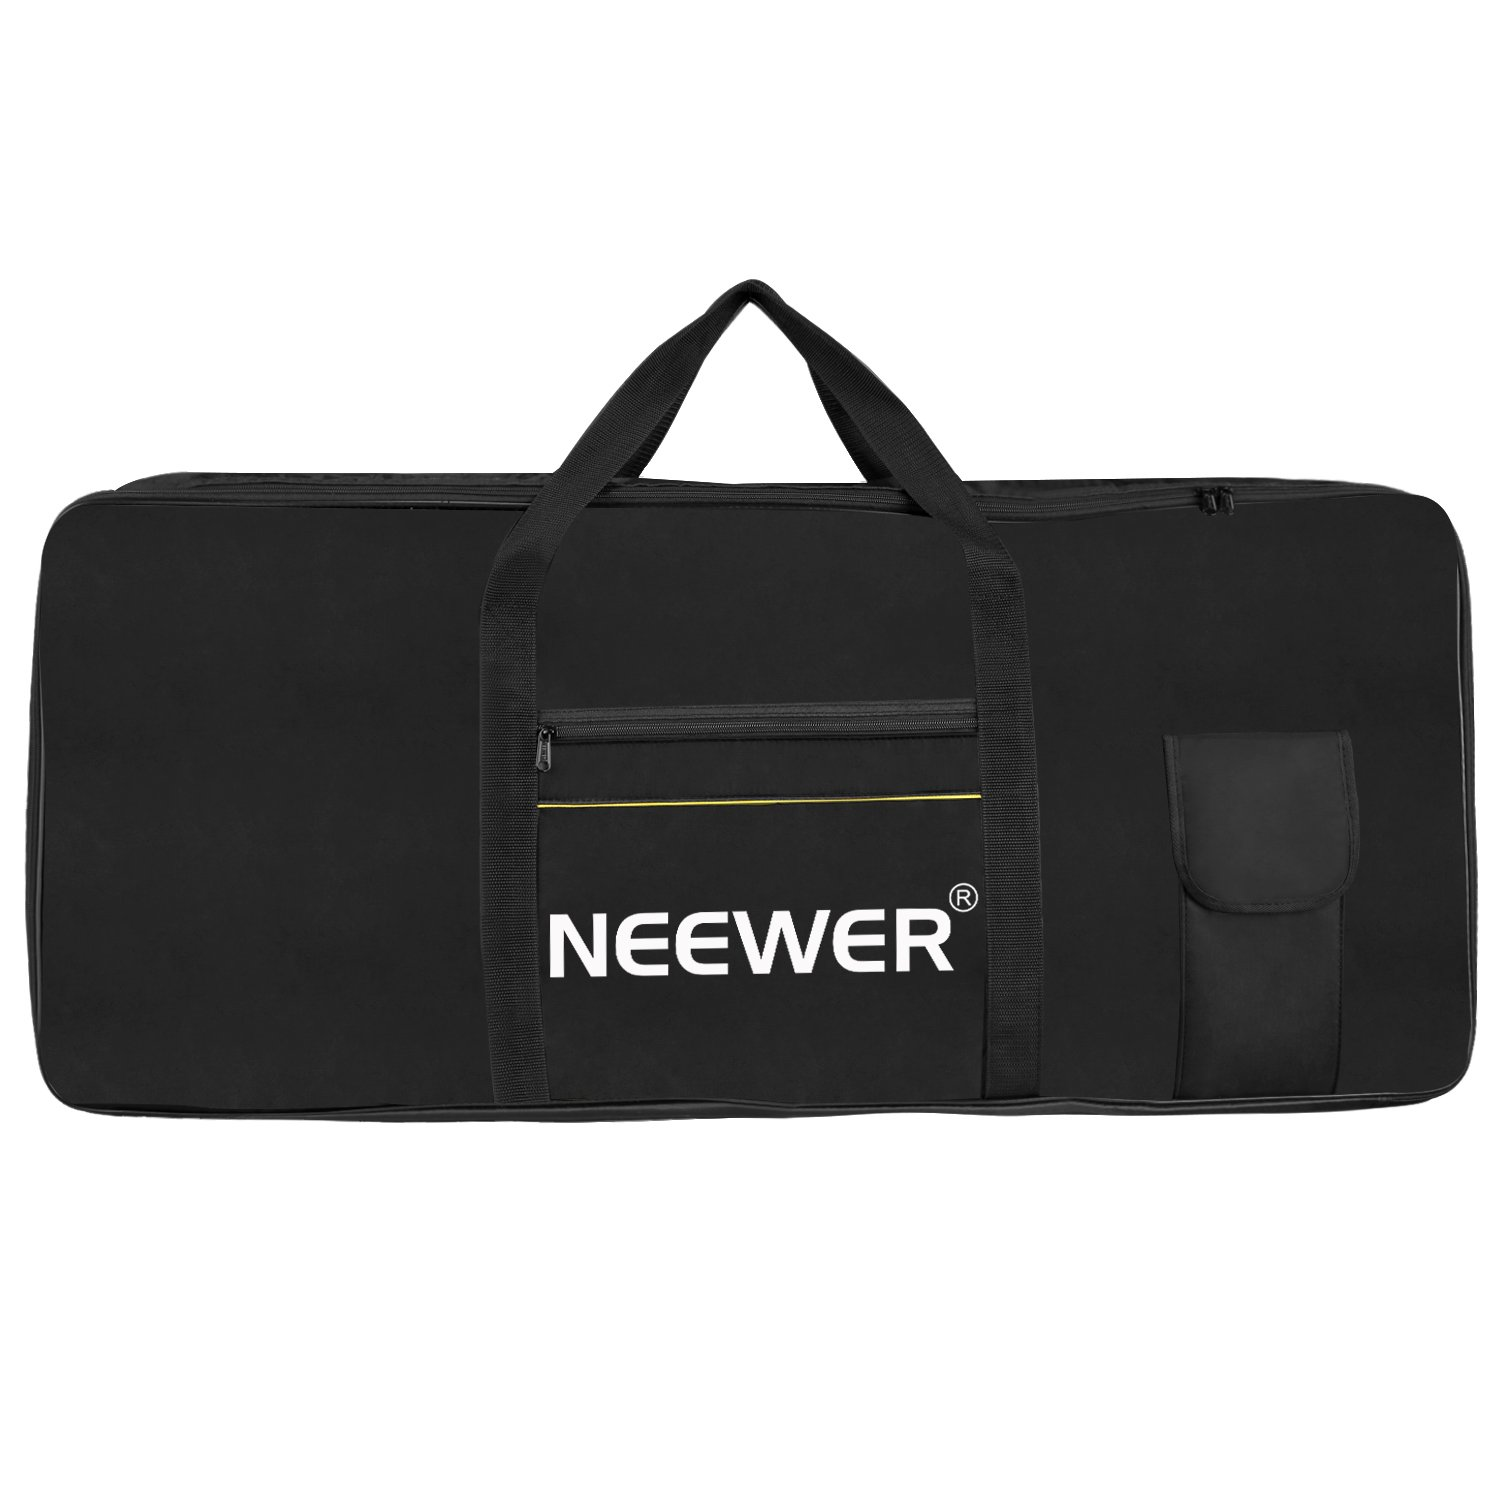 Neewer 61 Key Electronic Organ Piano Keyboard Case, Portable Bag Made of Oxford Cloth,39x16x5.5 inches/98.5x41x14 centimeters with Big Cushion Storage,Cotton Padded for Church,Concert,Music Studio Use